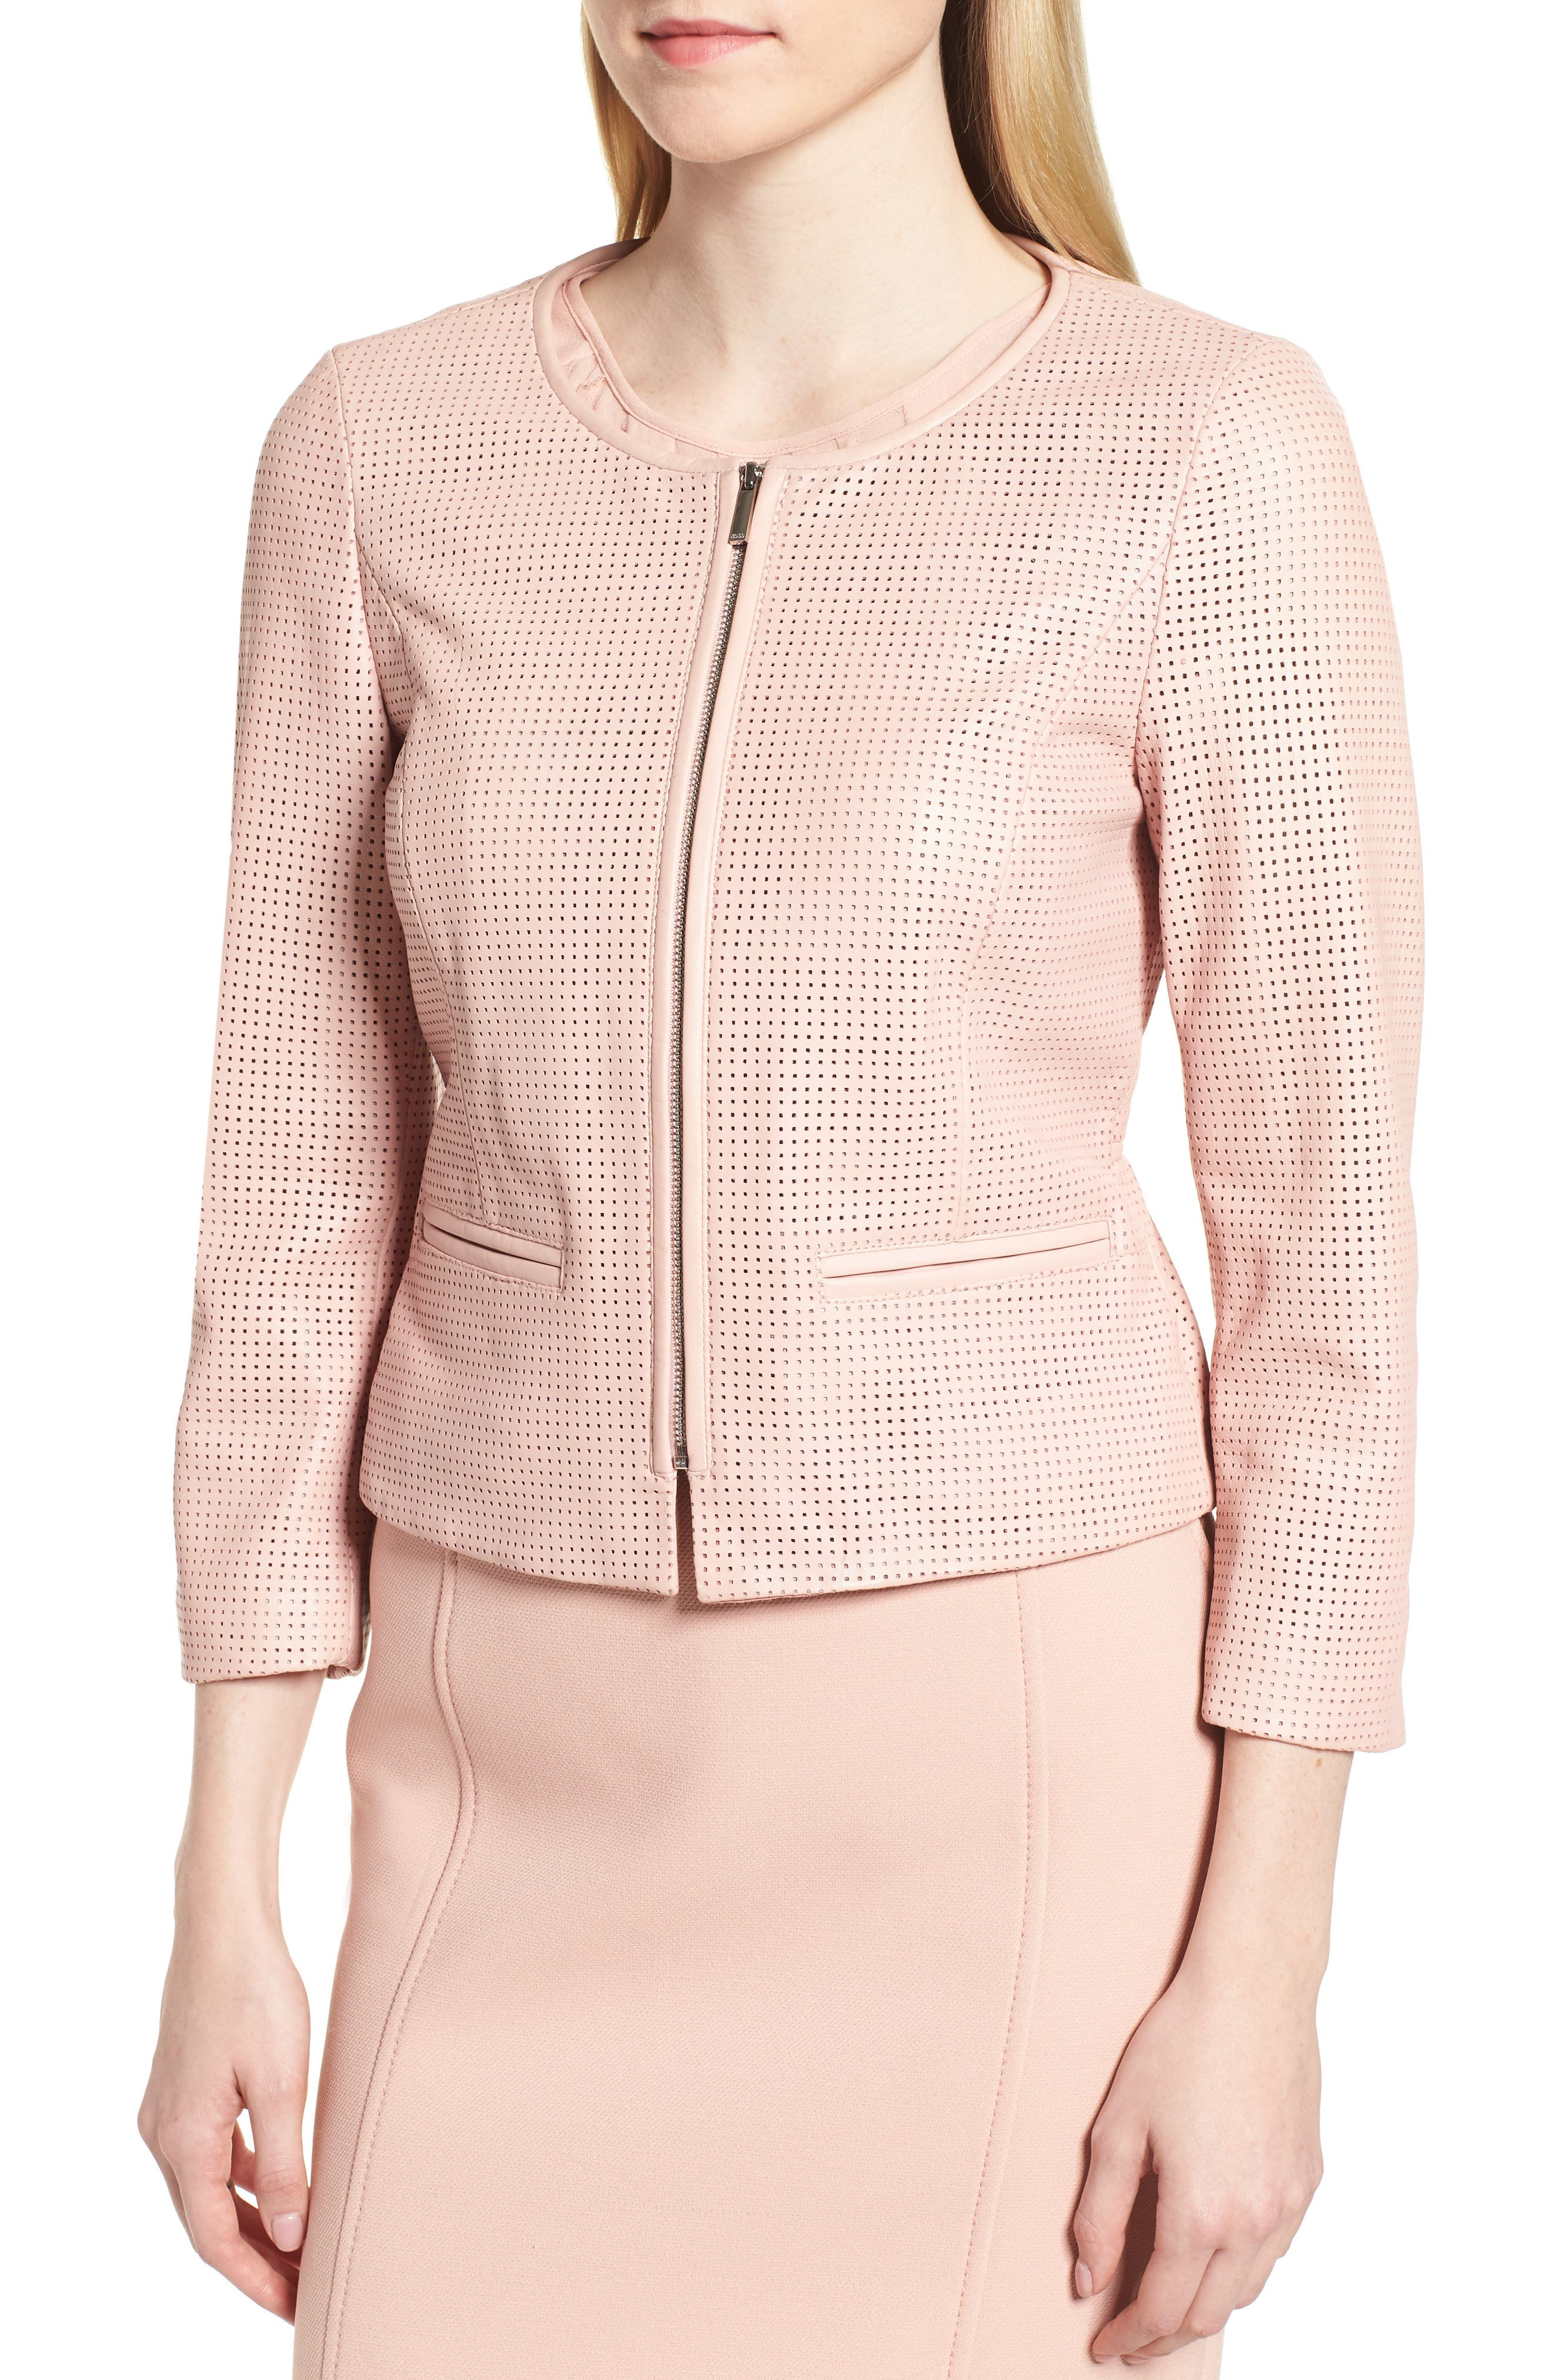 Sallotina Perforated Leather Jacket,                             Alternate thumbnail 4, color,                             Blush